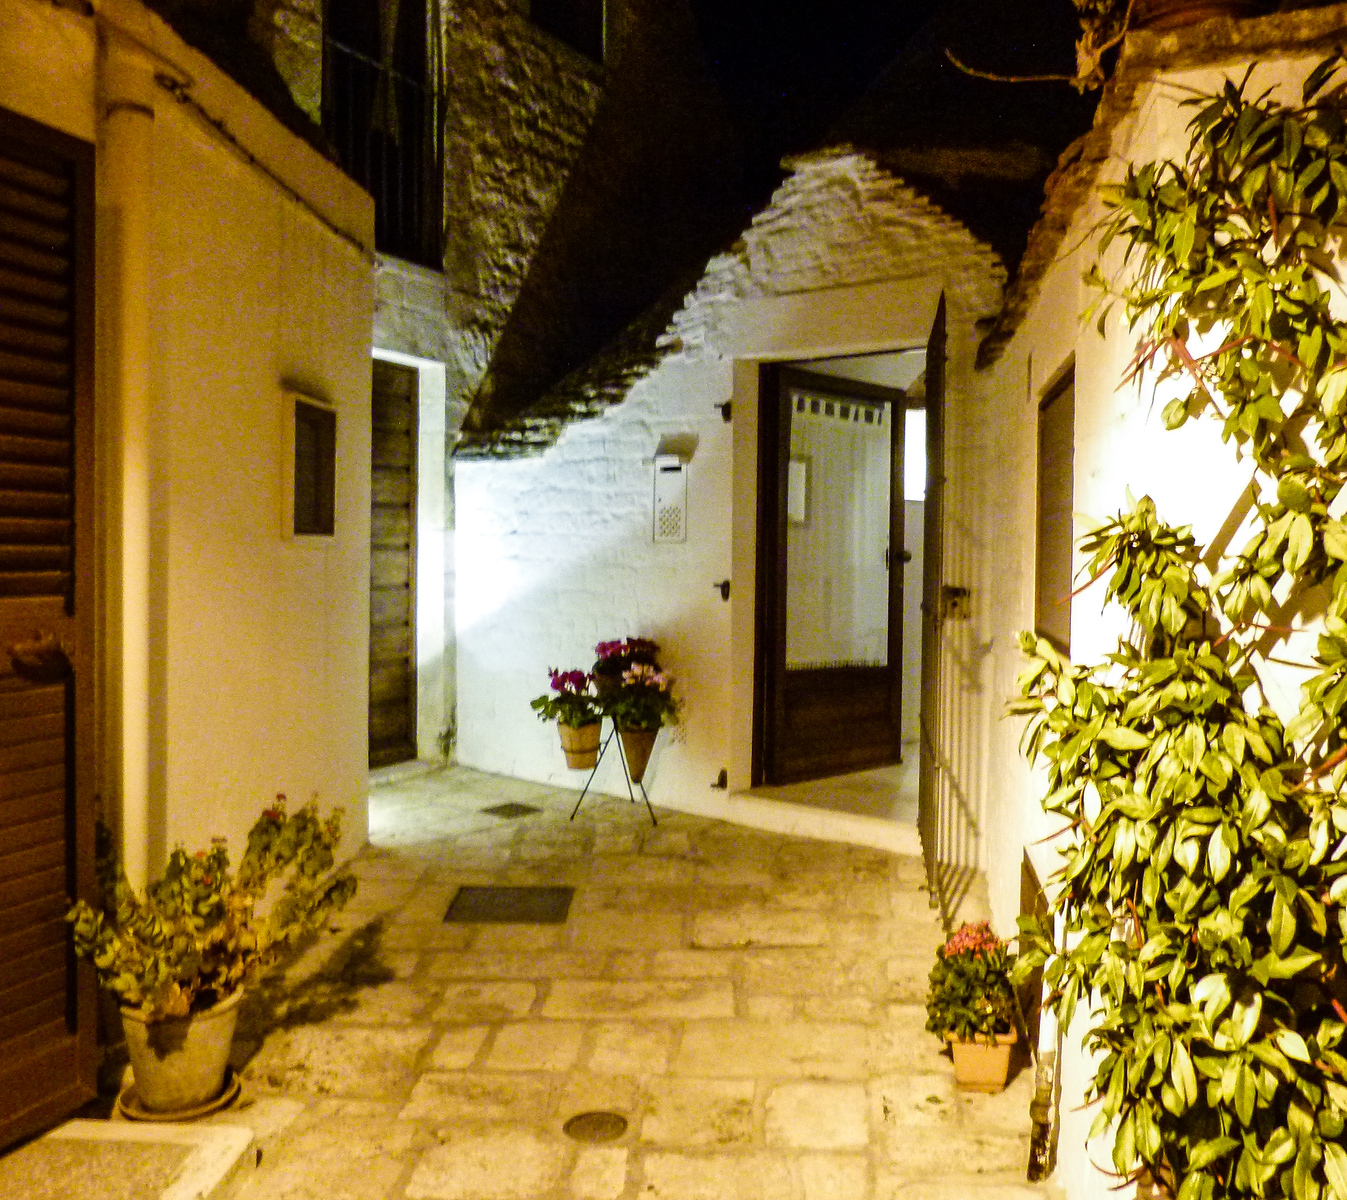 Boomer travel - Italy - stay in a Trulli house when you visit Alberobello. Click through to learn about our favorite places to stay Italy. Perfect for your next boomer trip to Italy.